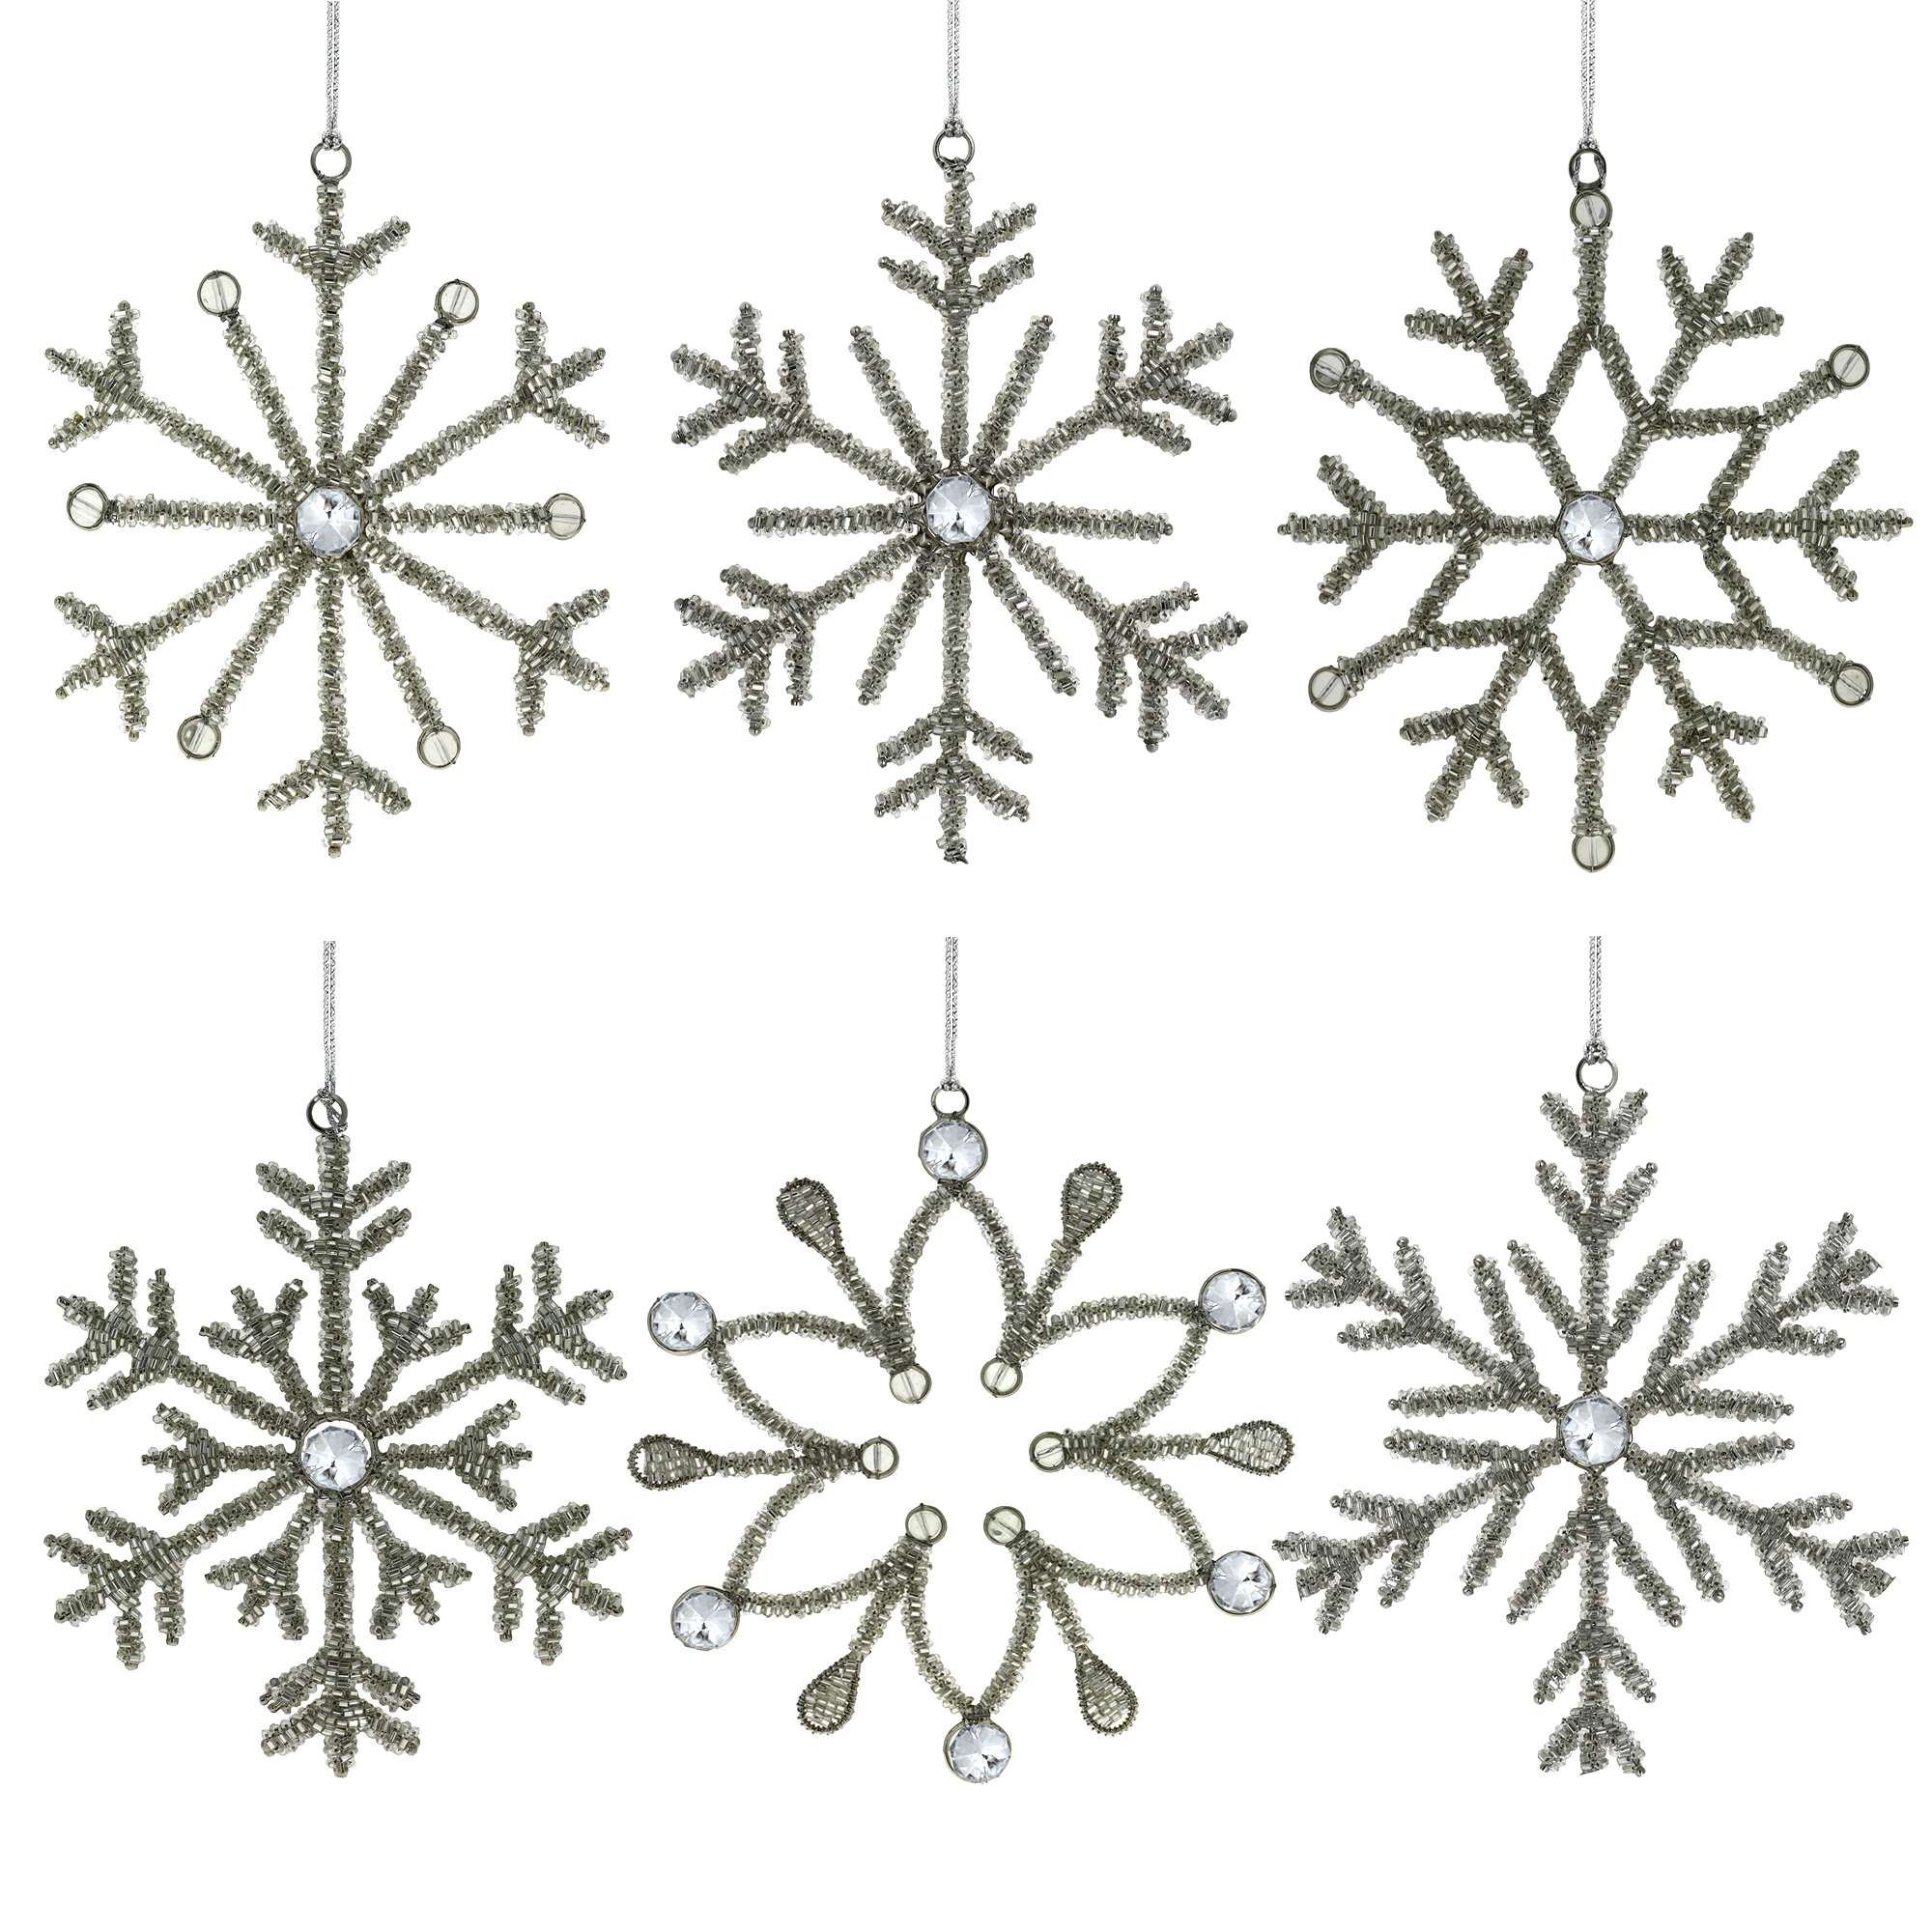 Set of 6 Handmade Large Snowflake Iron and Glass Pendant Christmas Ornaments For The Home, 9 Inches